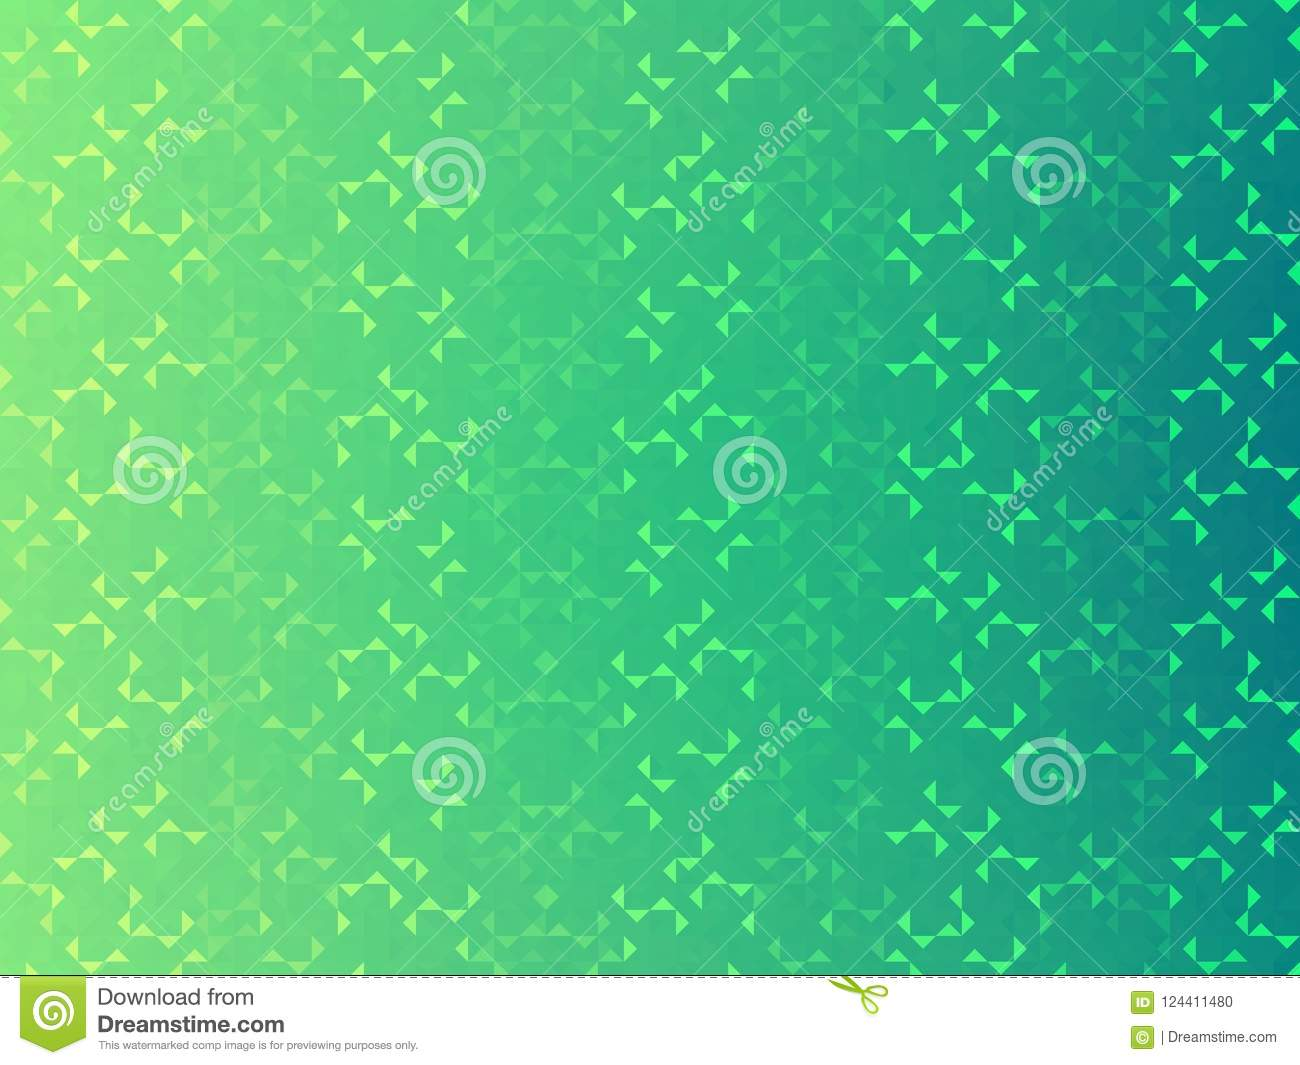 Abstract wallpaper, blue, green ombre background, triangles